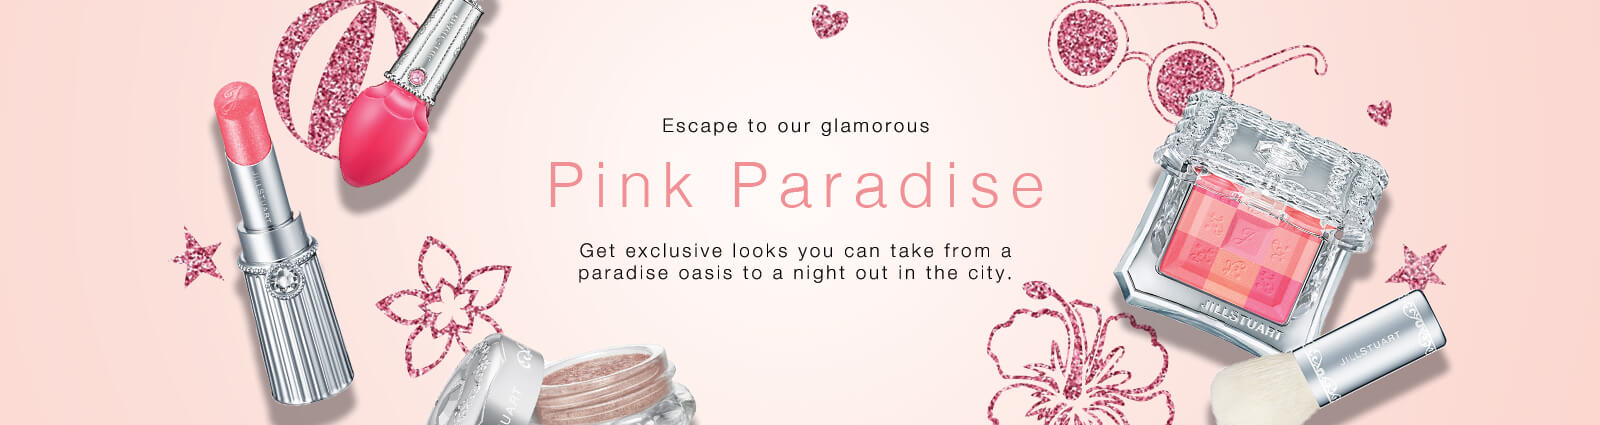 Escape to our glamorous Pink Paradise. Get exclusive looks you can take from a paradise oasis to a night out in the city.